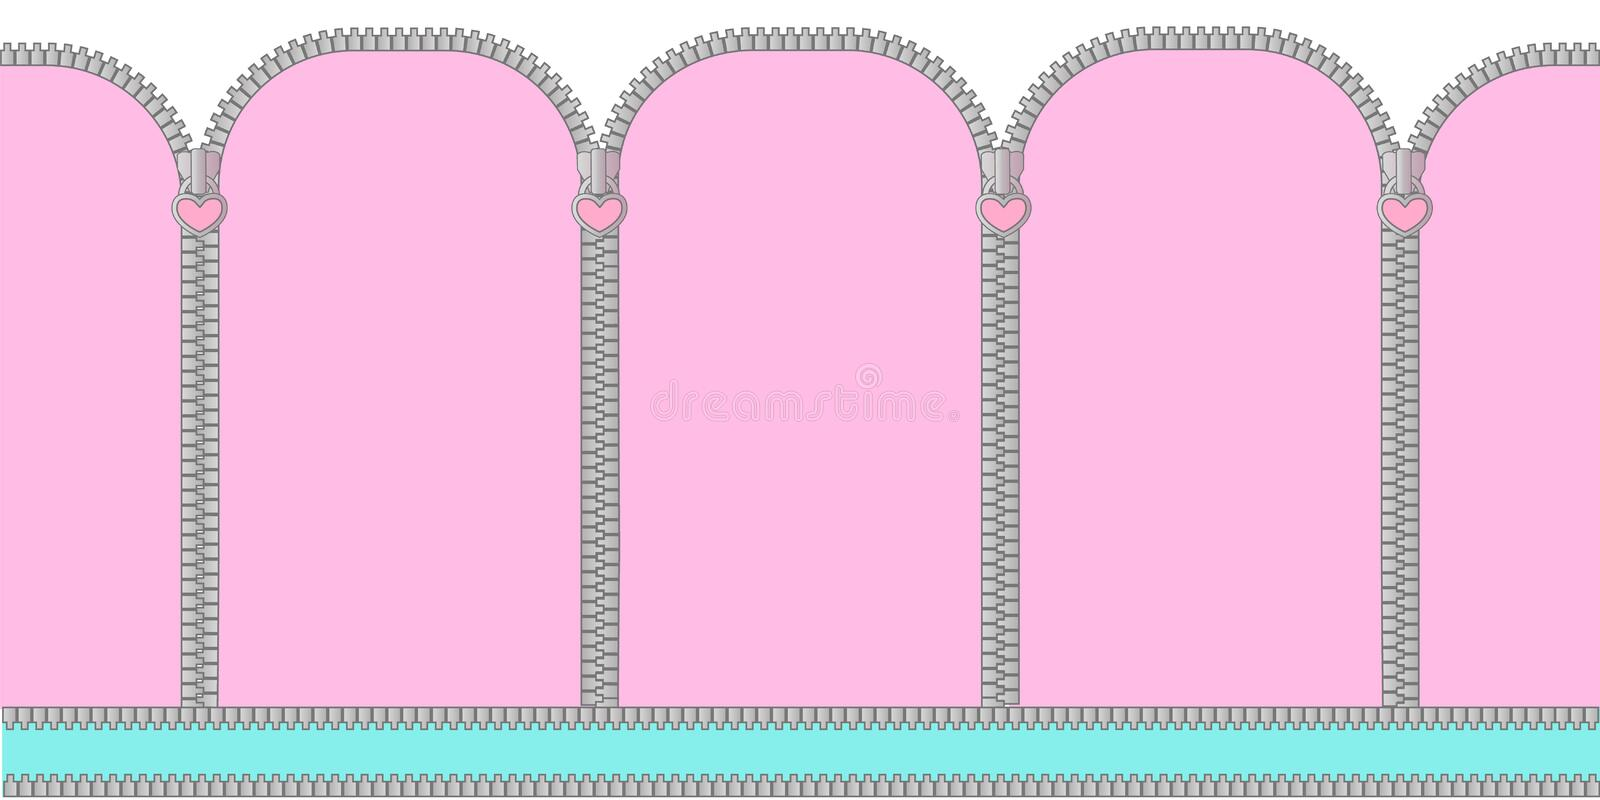 Pink and mint turquoise seamless background with arched window . Candy shop showcase backdrop. Decoration banner themed Lol doll Princess girlish photo booth vector illustration